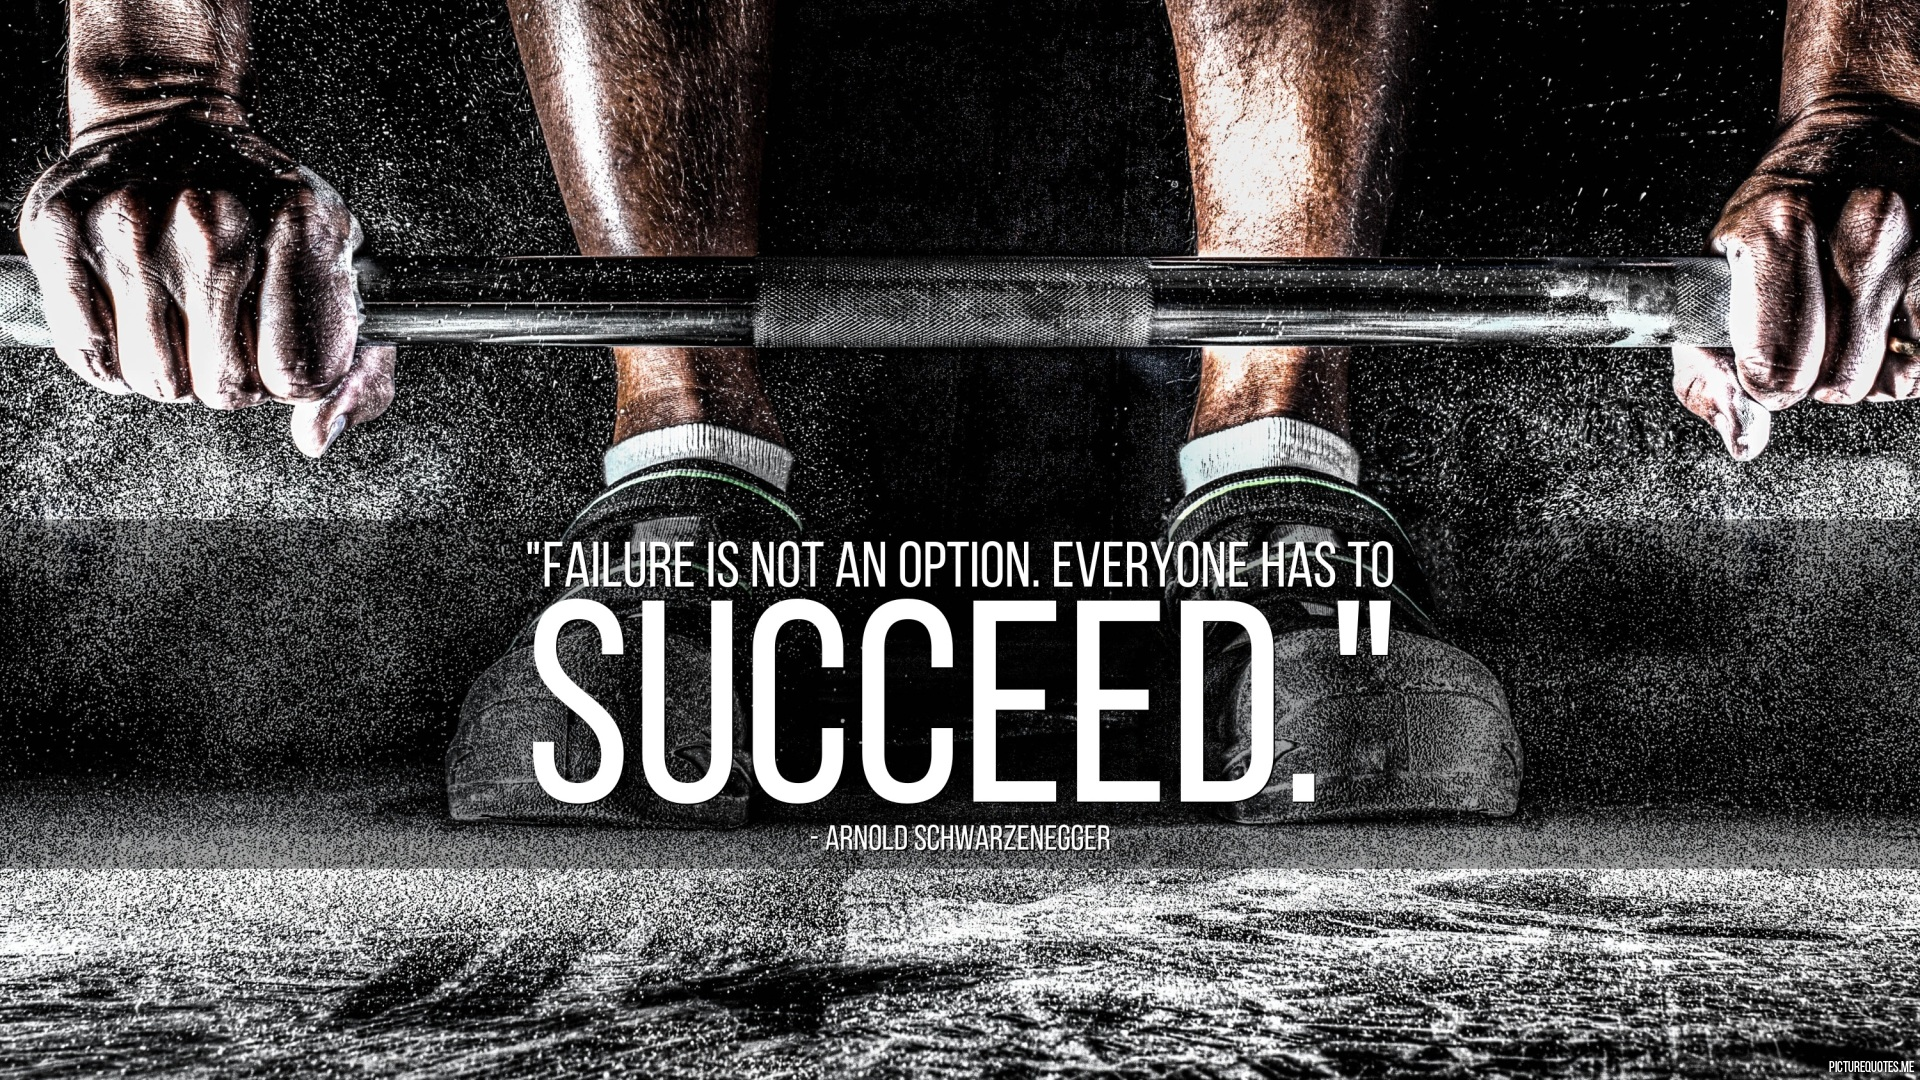 Arnold Schwarzenegger Quotes Wallpaper Failure Is Not An Option Everyone Has To Succeed